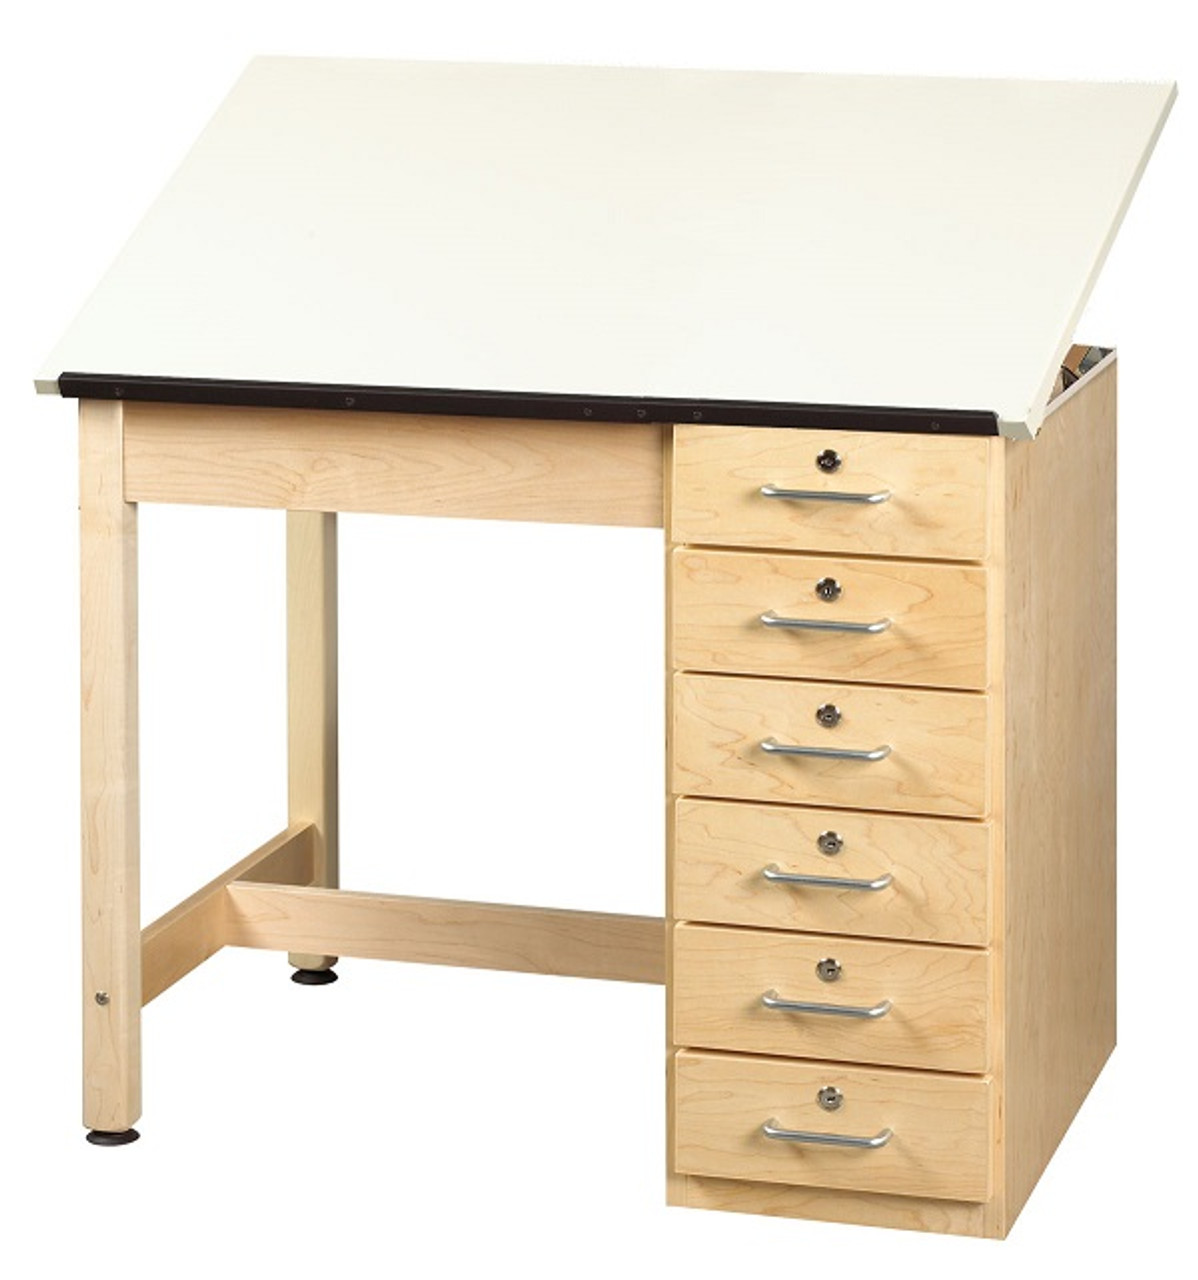 Enjoyable Shain Dt 4A Drafting And Art Table With 6 Drawers And Adjustable Top Home Interior And Landscaping Analalmasignezvosmurscom